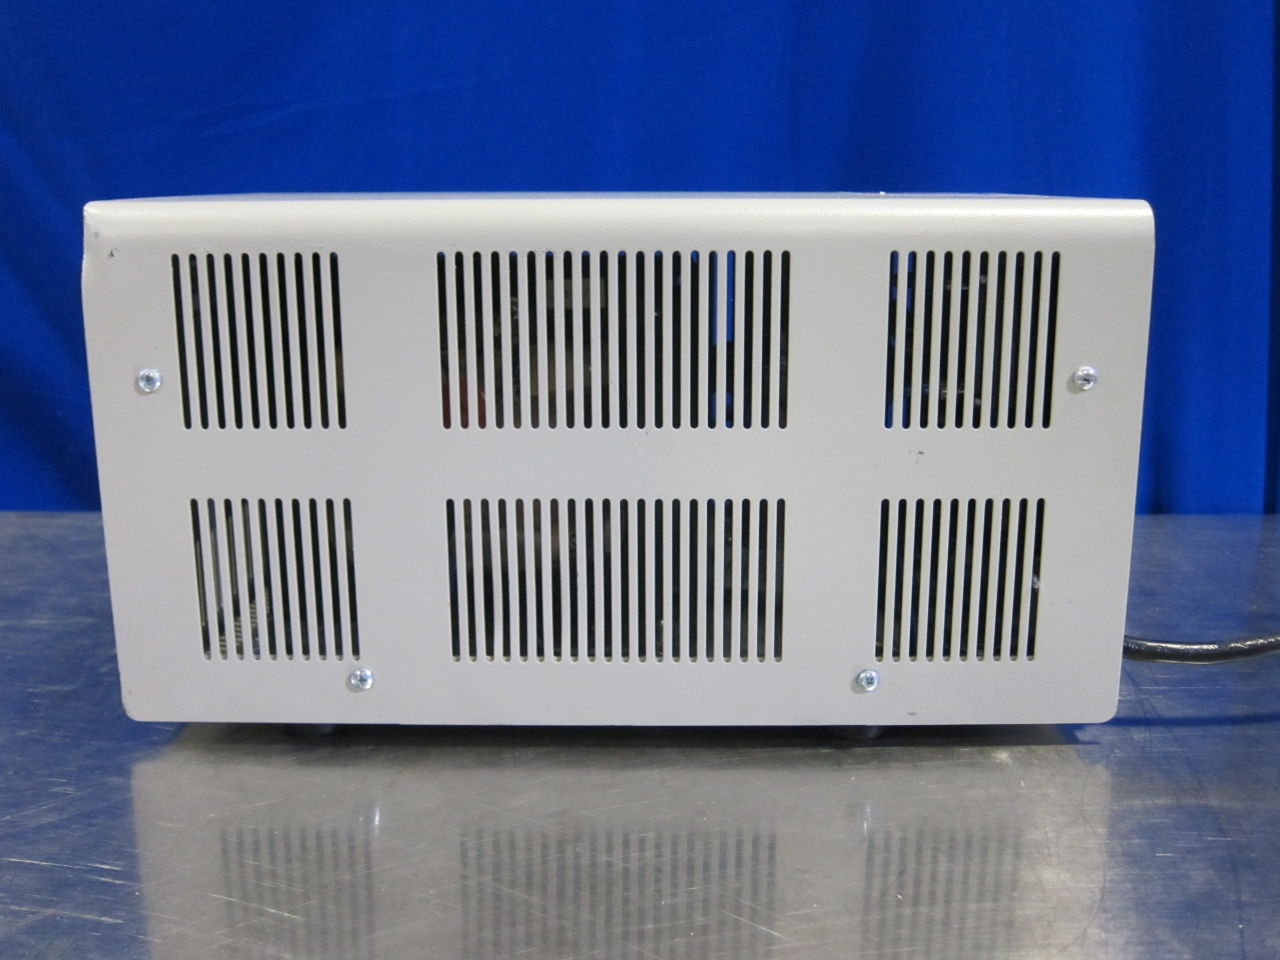 ONEAC MD-1115 Power Conditioner